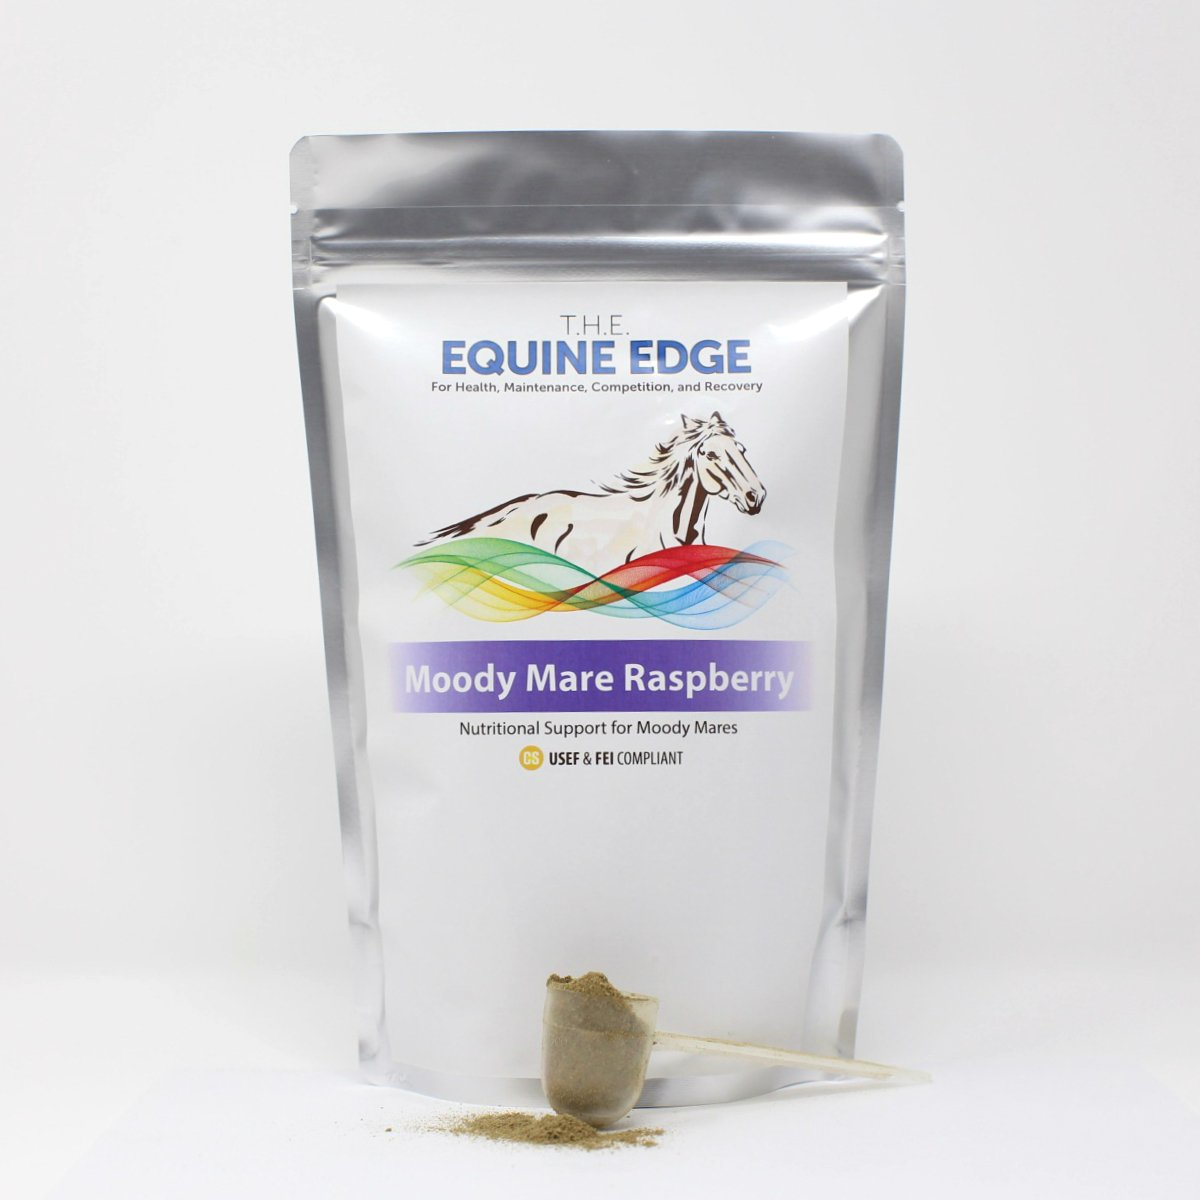 T.H.E. Equine Edge Moody Mare Raspberry - Pure Organic Raspberry Leaf for Calming, 30 Servings by T.H.E. Equine Edge